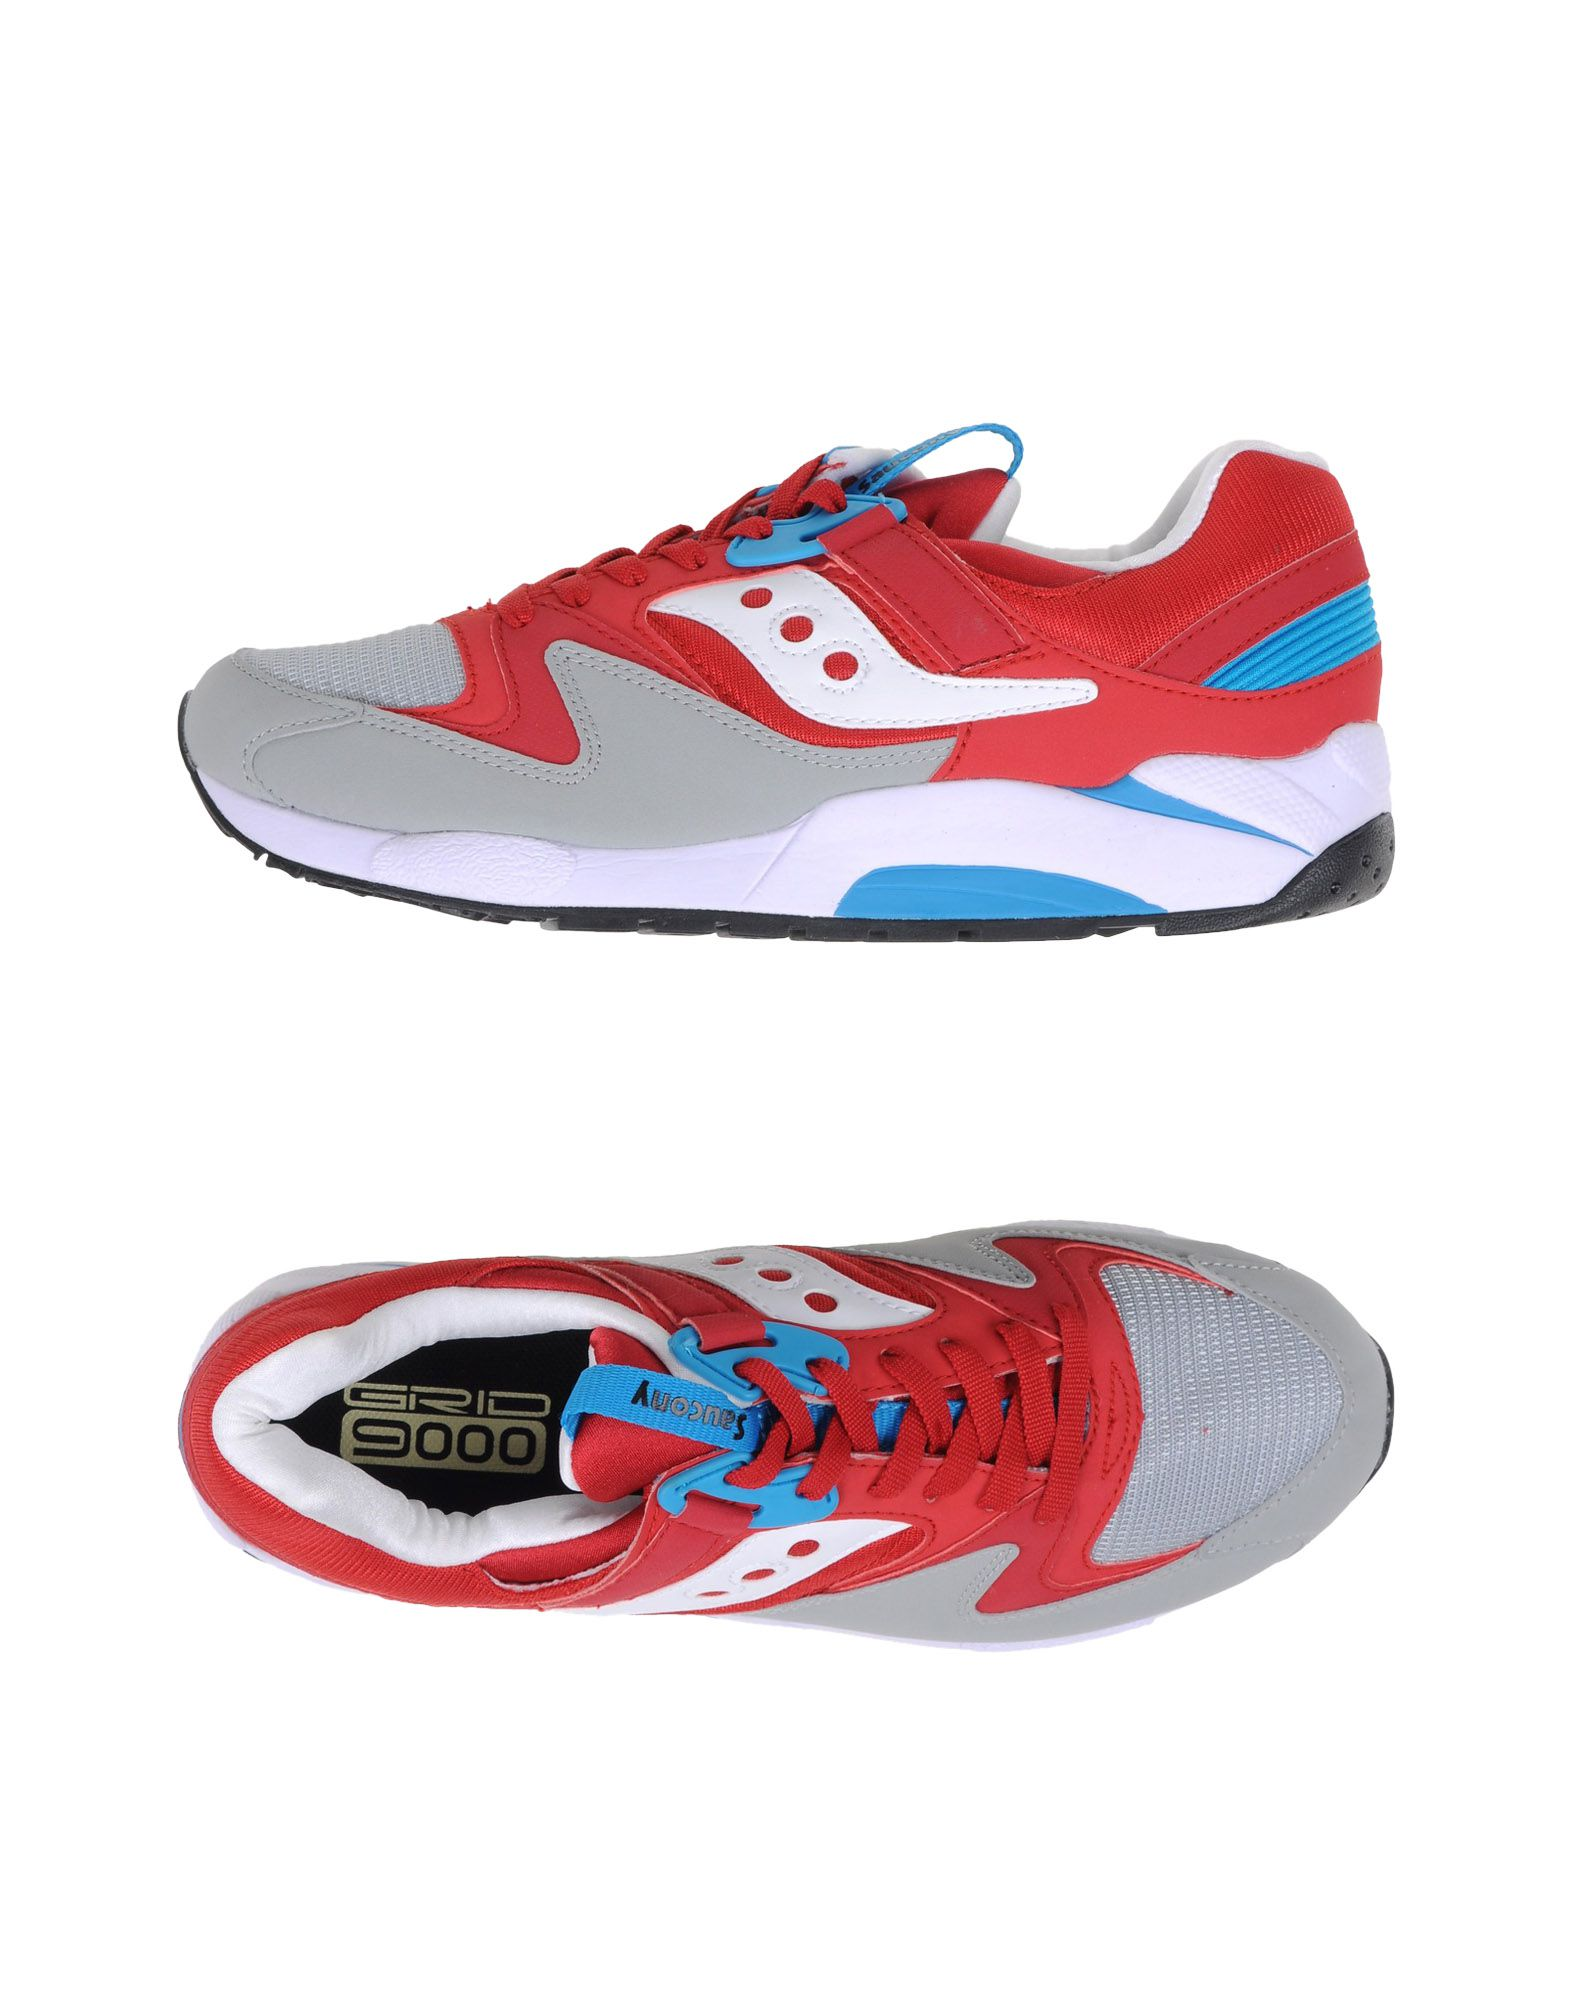 345d5653c994 Saucony Grid 9000 - Sneakers - Men Saucony Sneakers online on YOOX ...